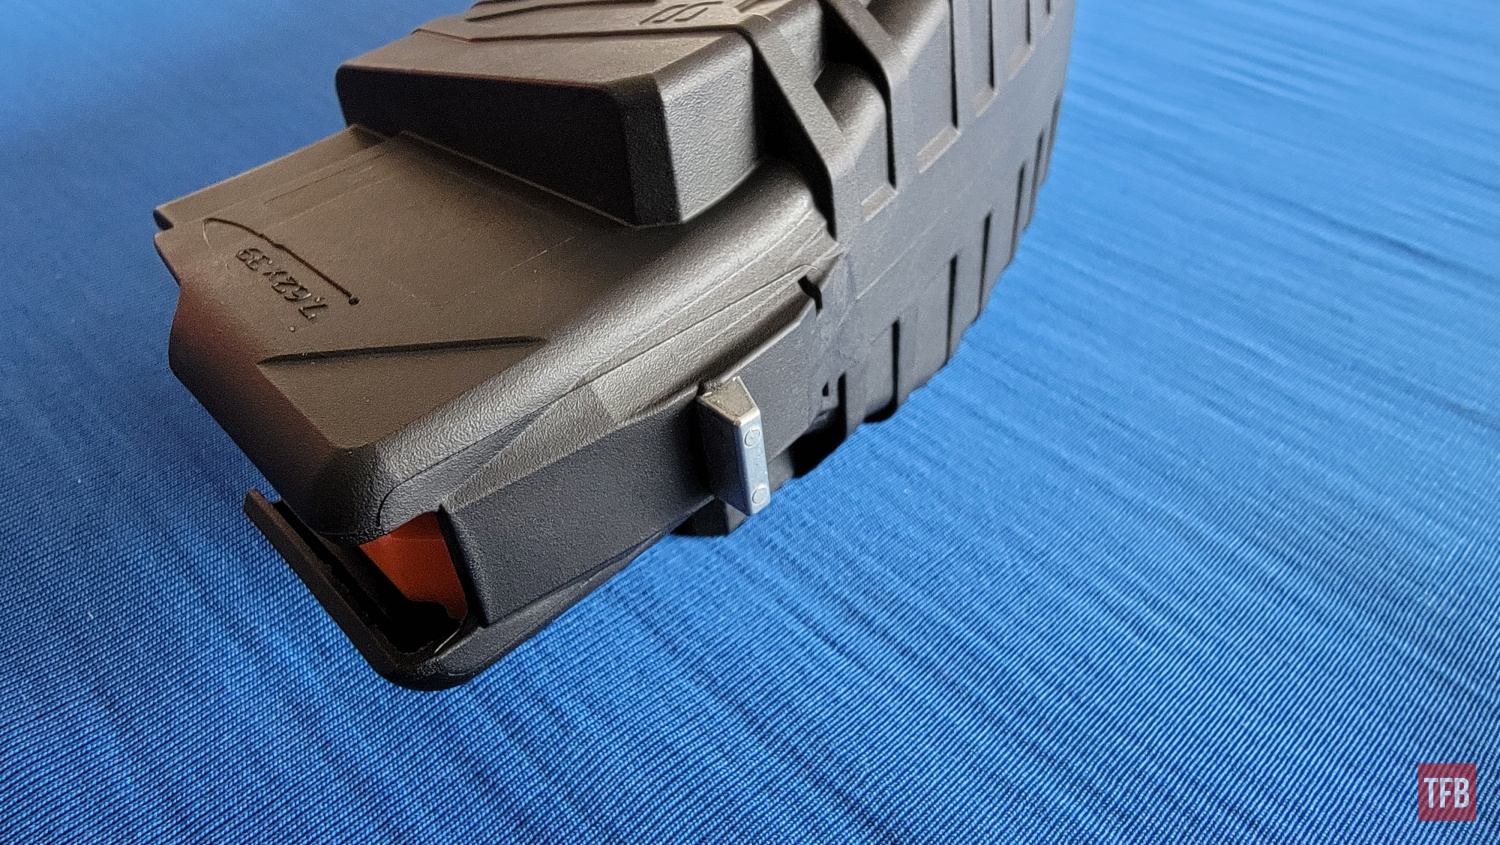 ATI and Schmeisser Introduce a NEW 60-Round AK Magazine